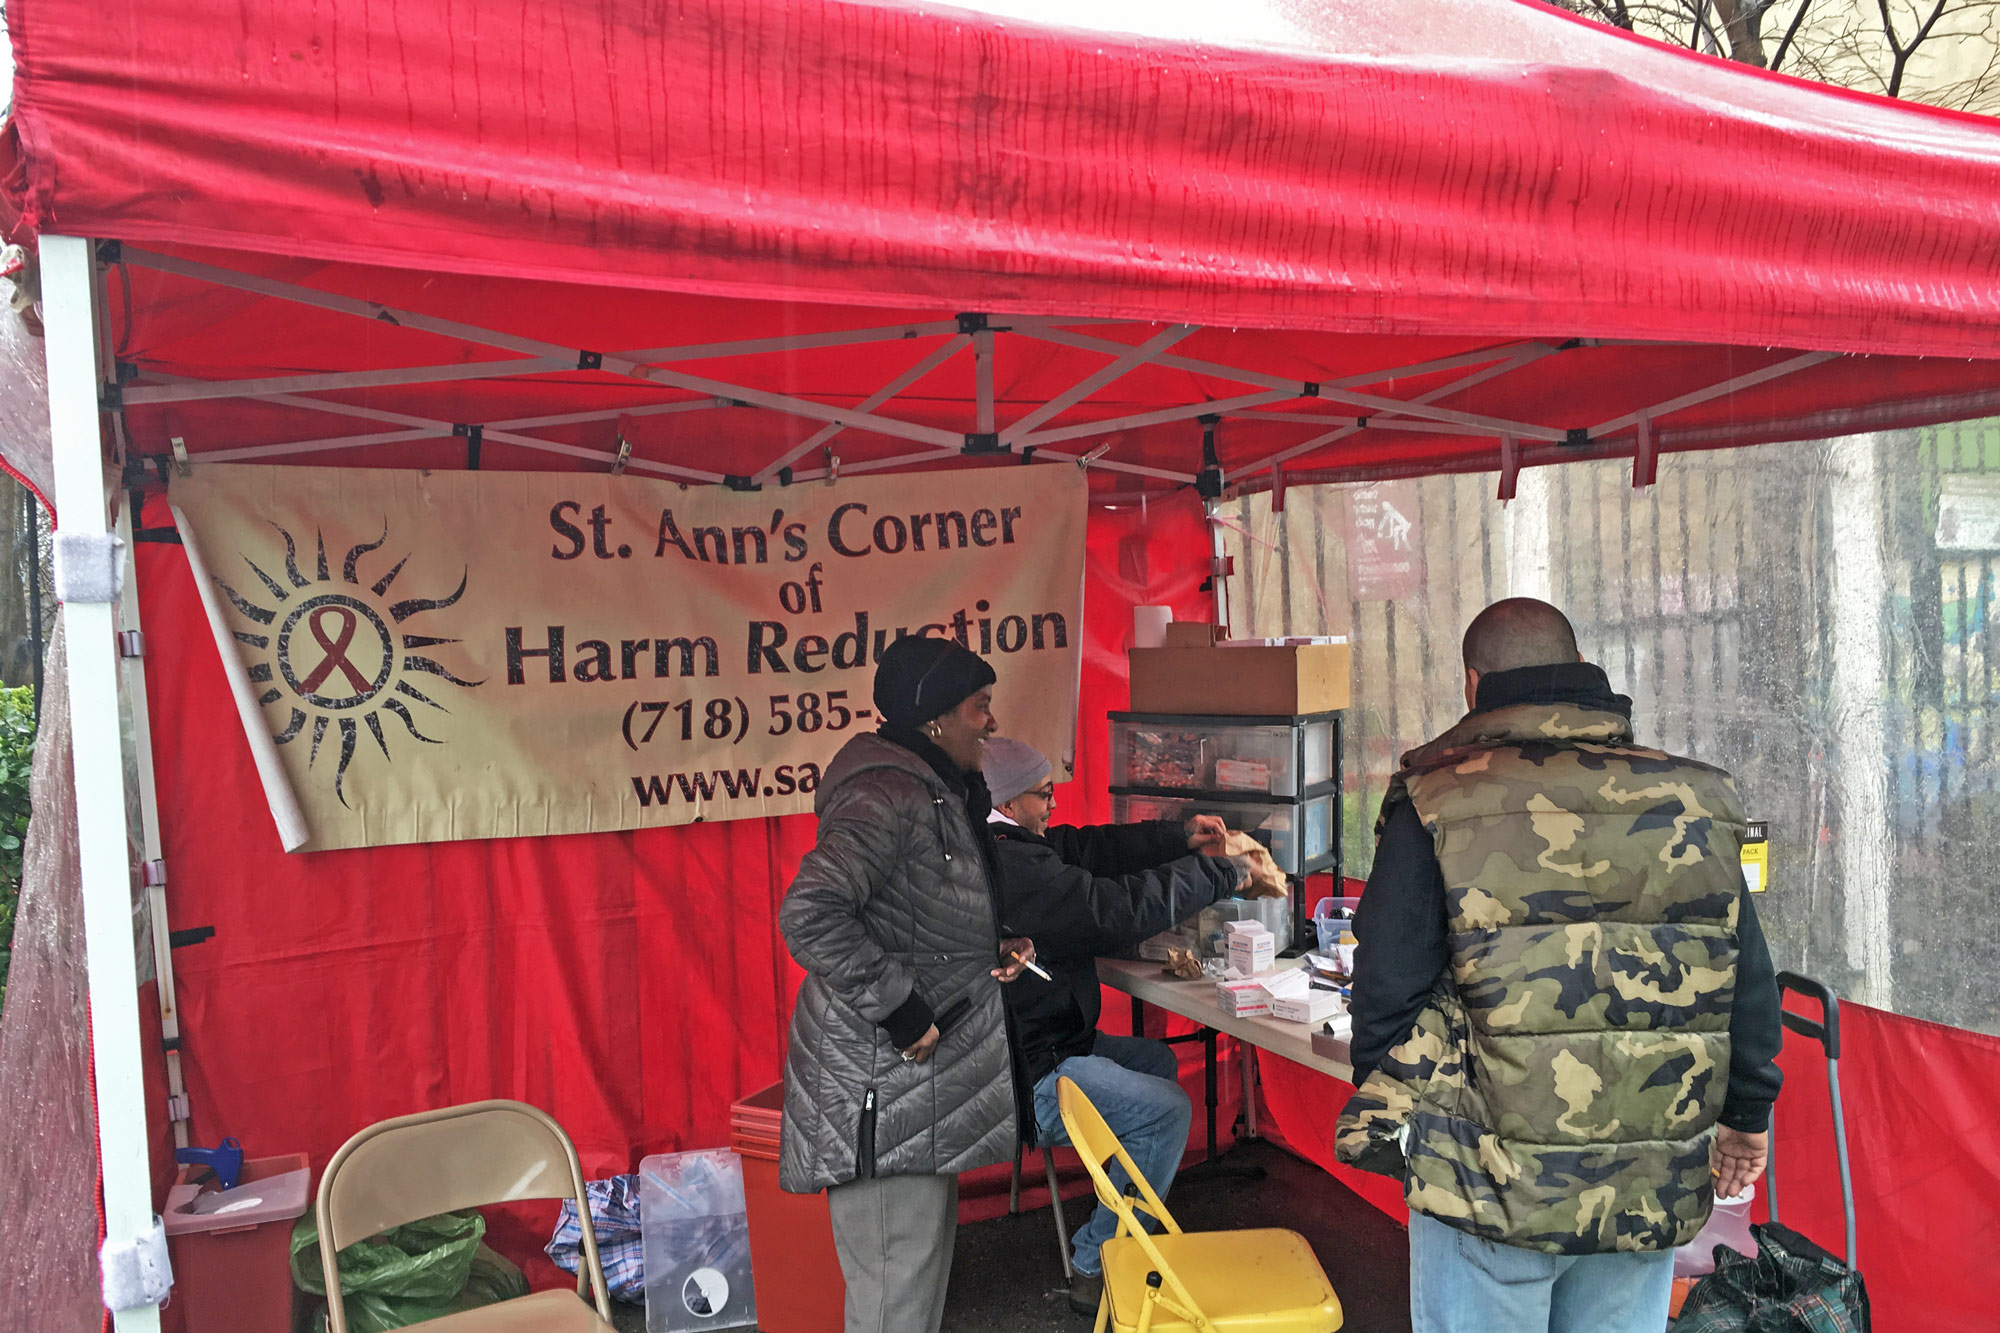 Deborah Walker and Eddie Morales work under the tent at St. Ann's Corner. (Photo by Michael O'Brien/GroundTruth)